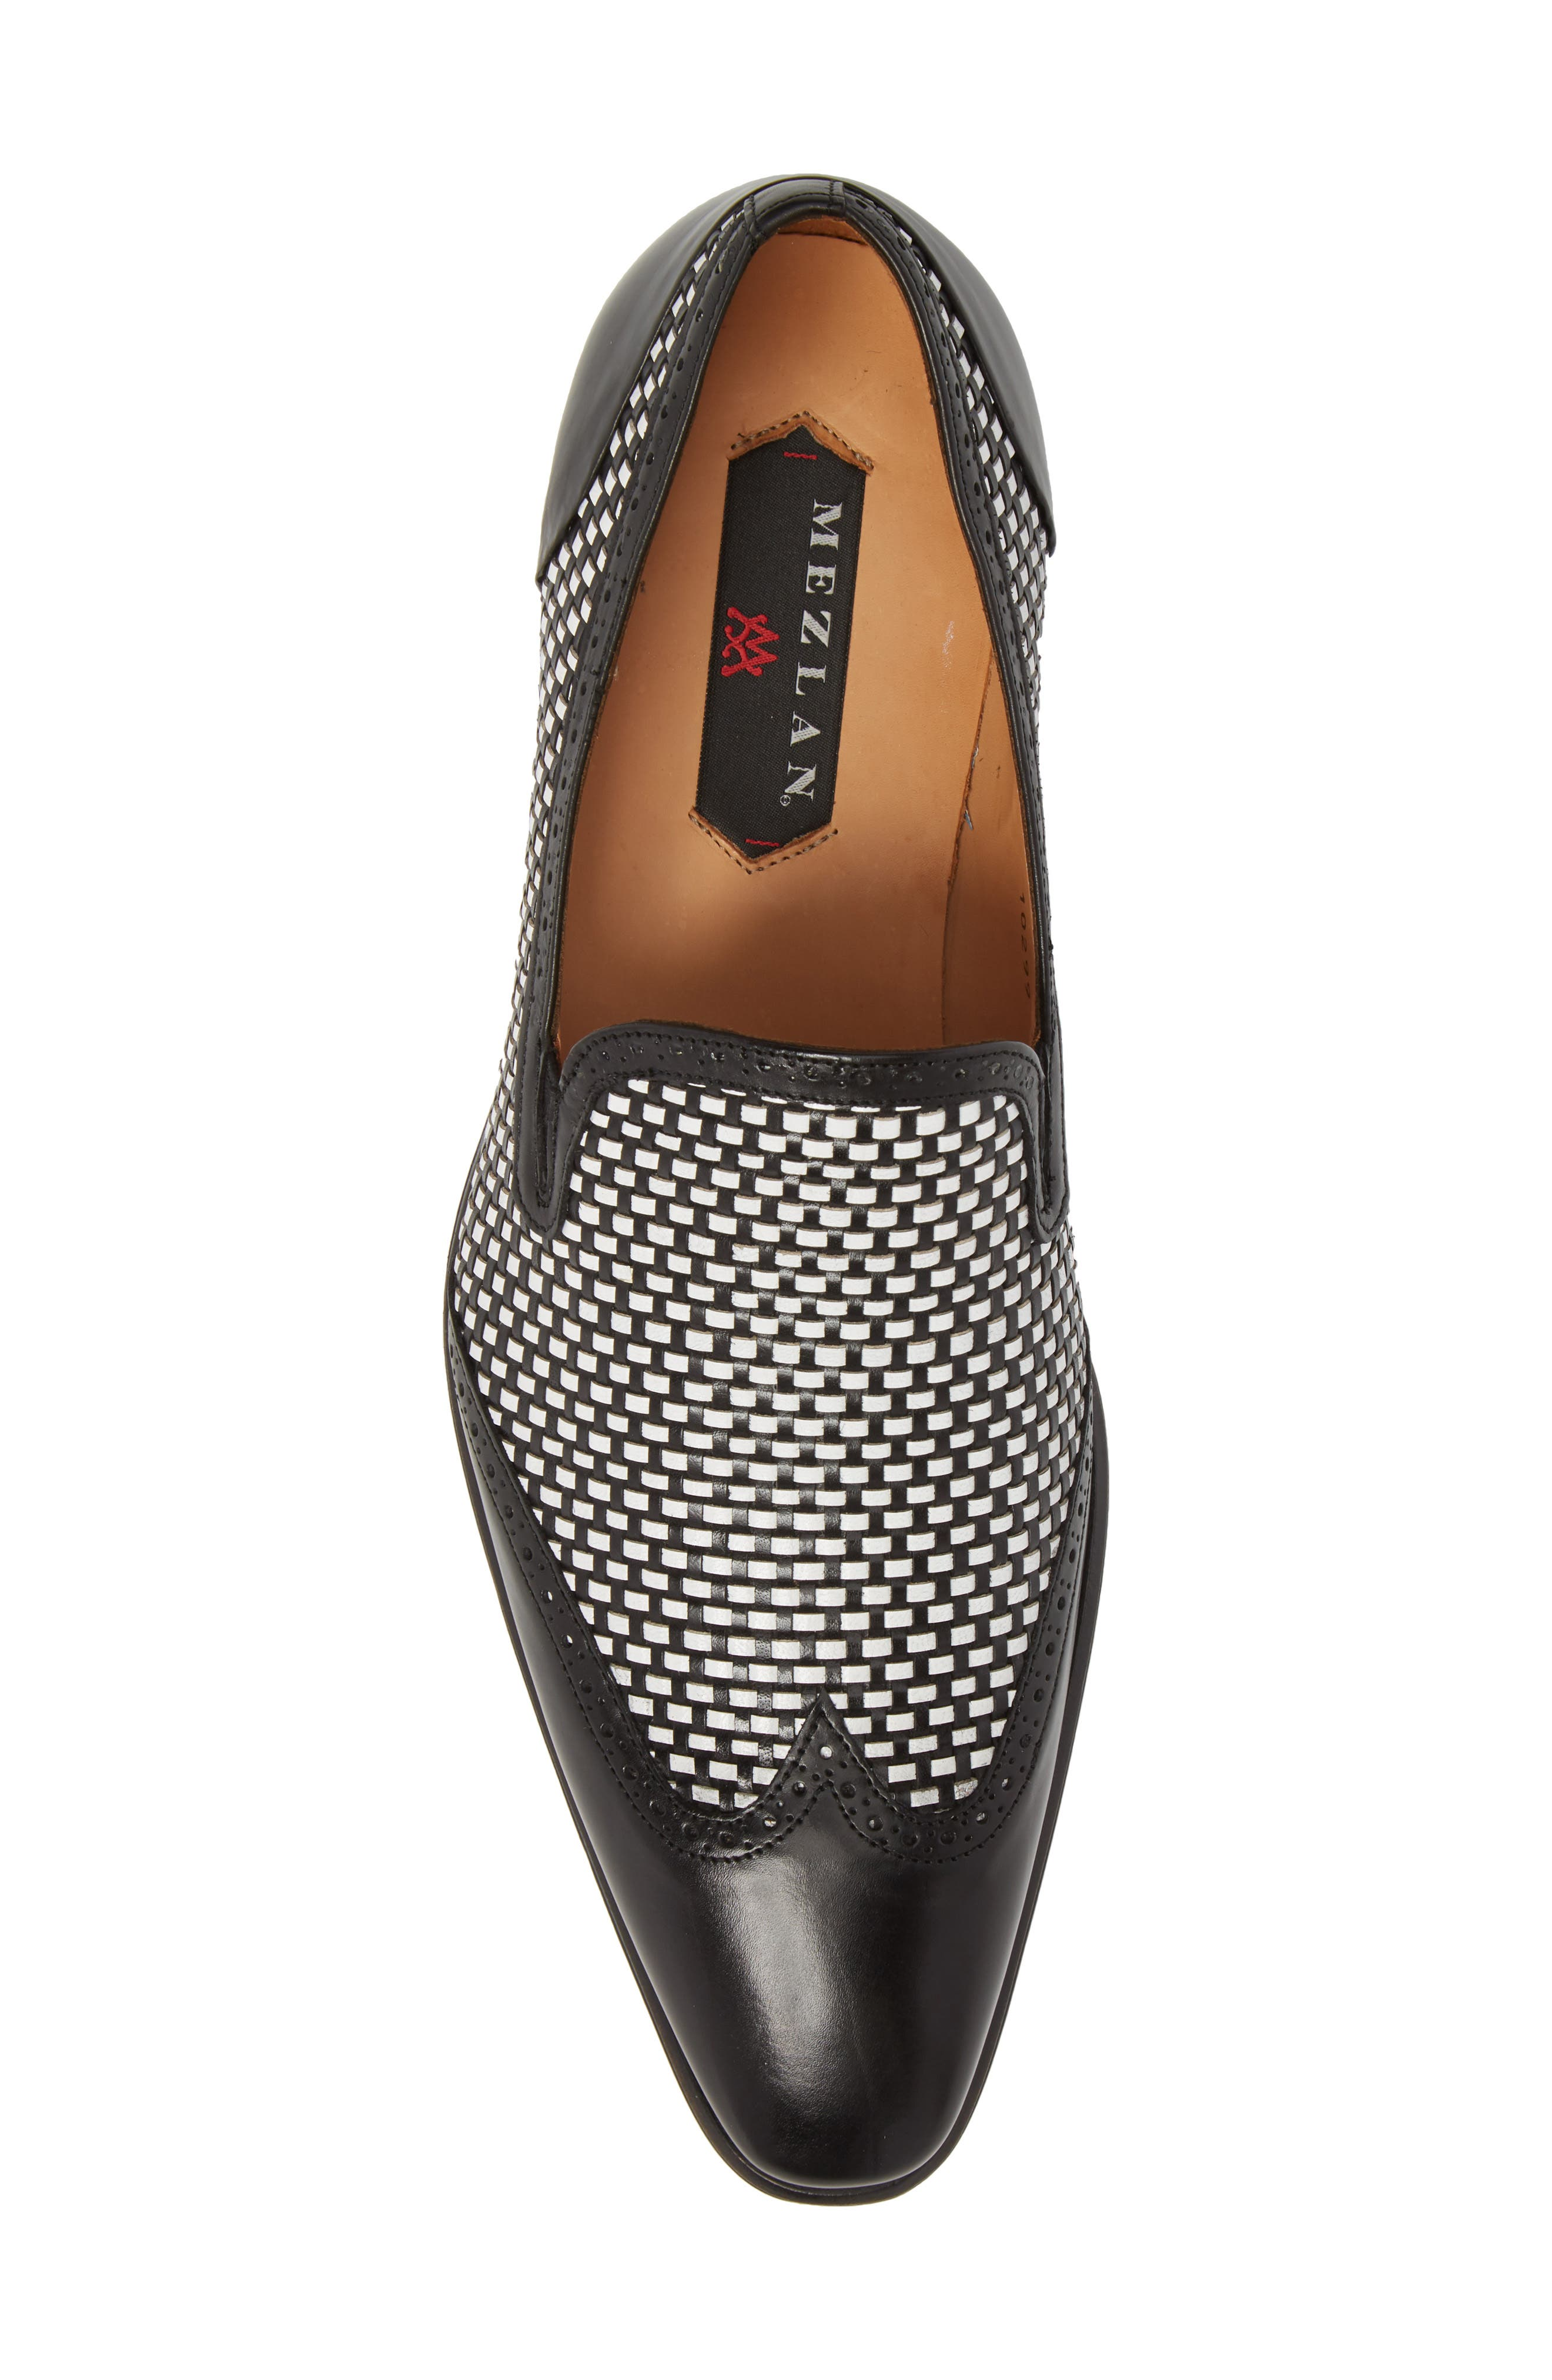 Nepos Woven Wingtip Loafer,                             Alternate thumbnail 5, color,                             Black/ White Leather